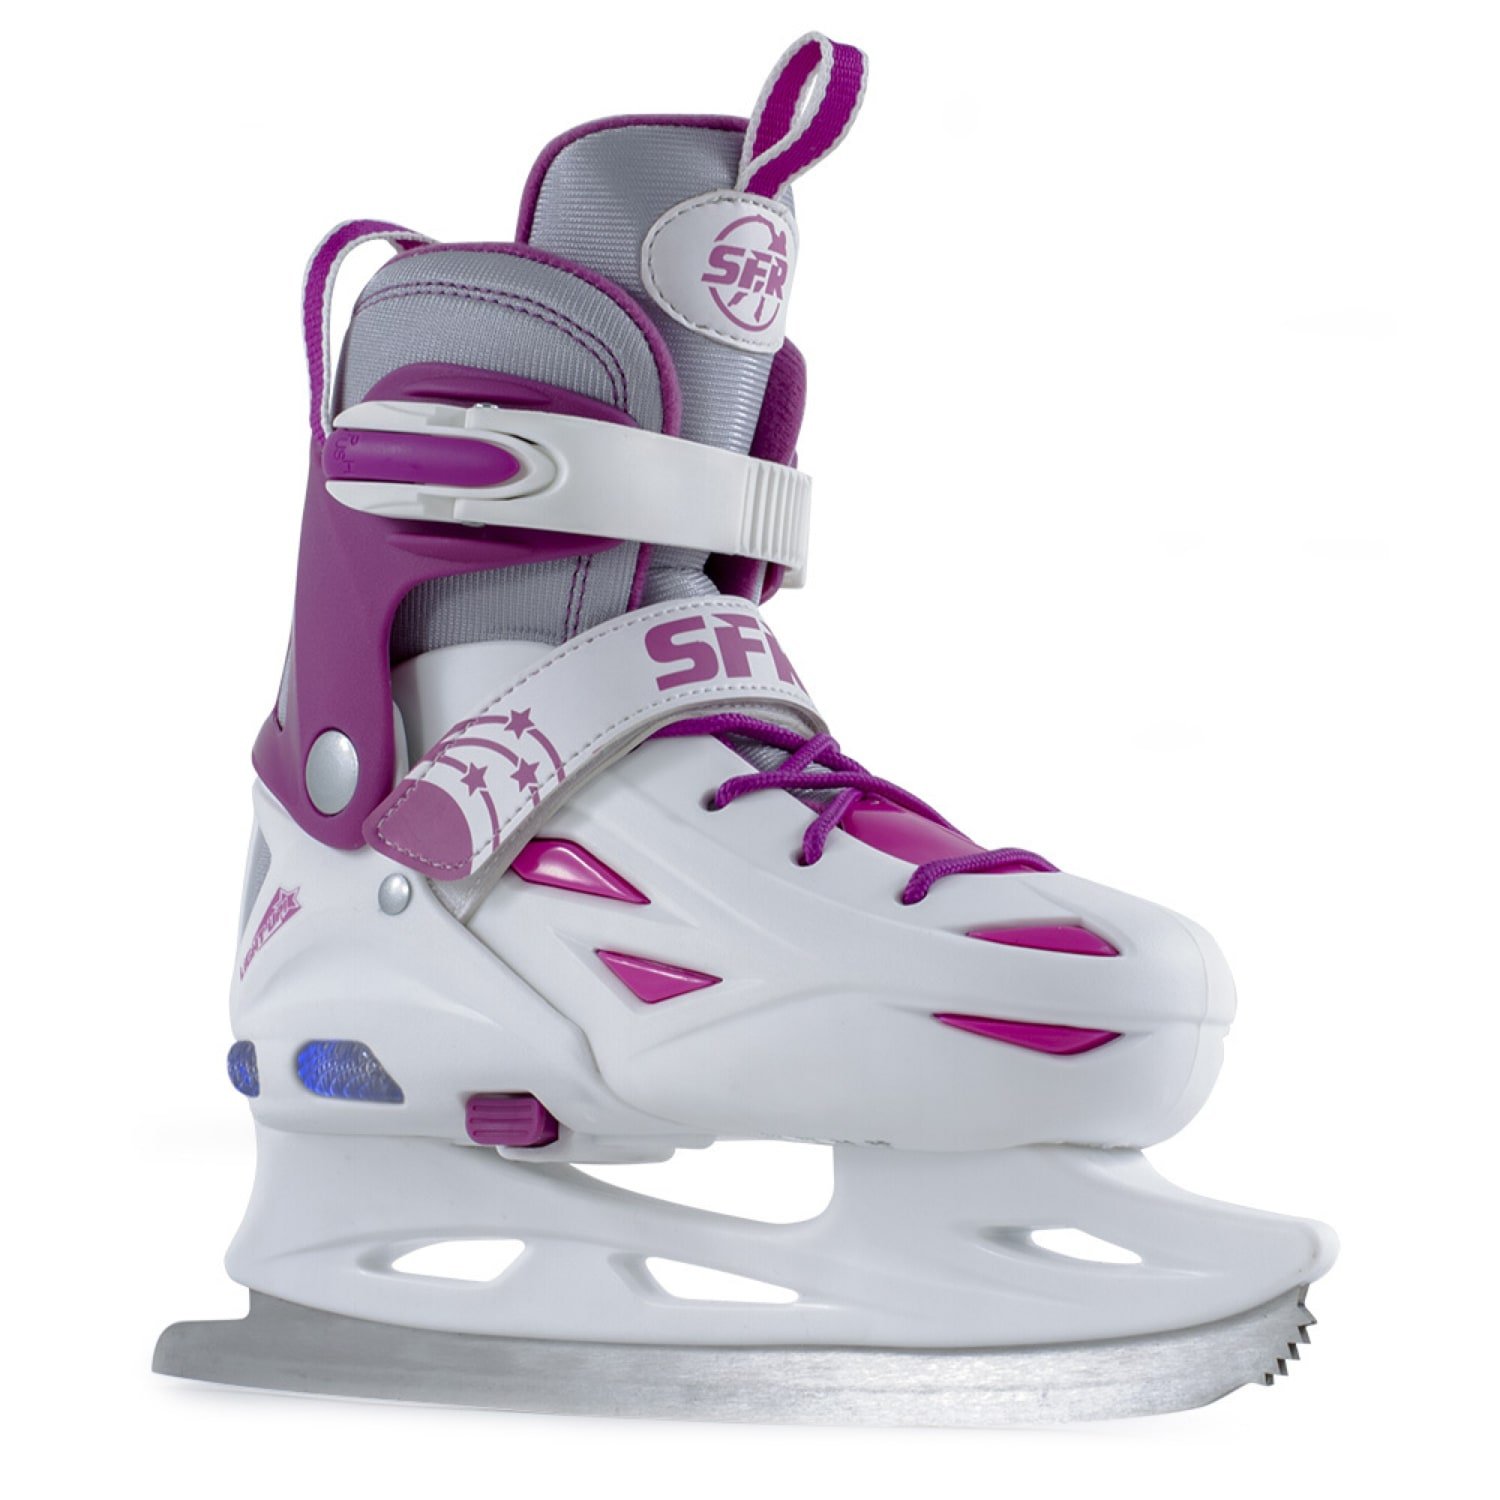 Sfr Ice Skates Eclipse Lights White Pink Ice Skates